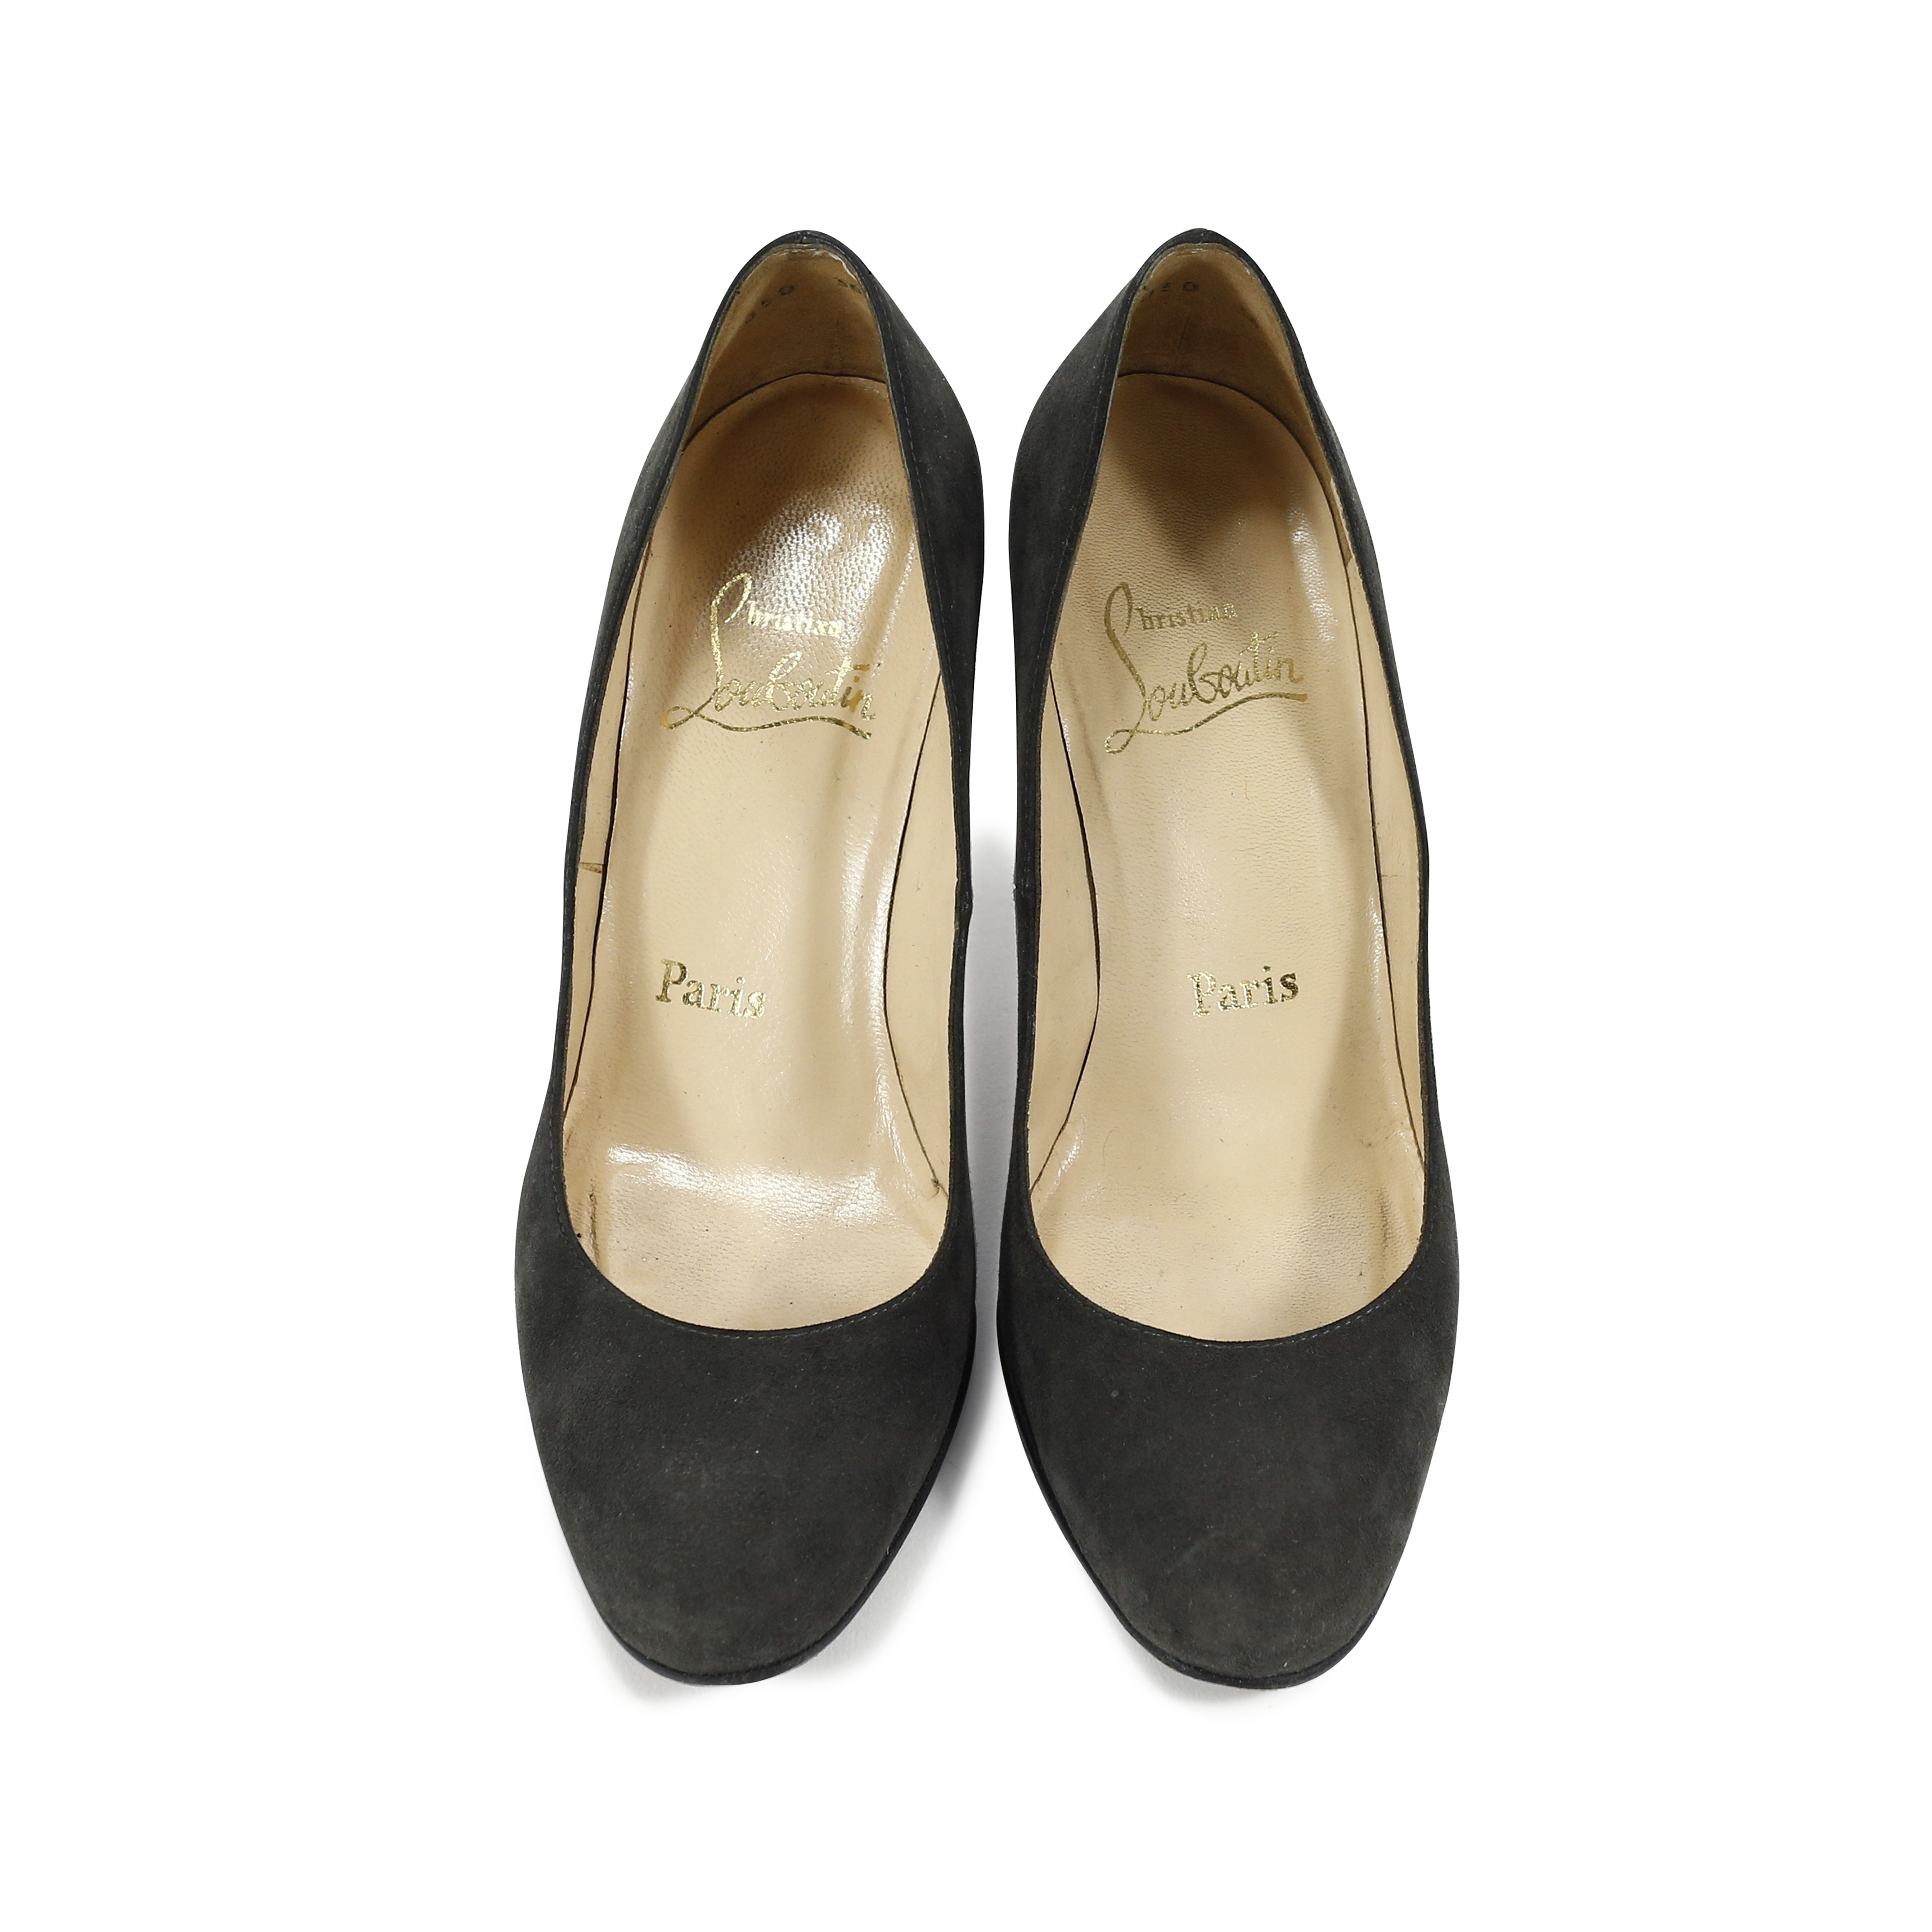 6e710c219bc Authentic Second Hand Christian Louboutin Suede Classic Pumps  (PSS-131-00016)